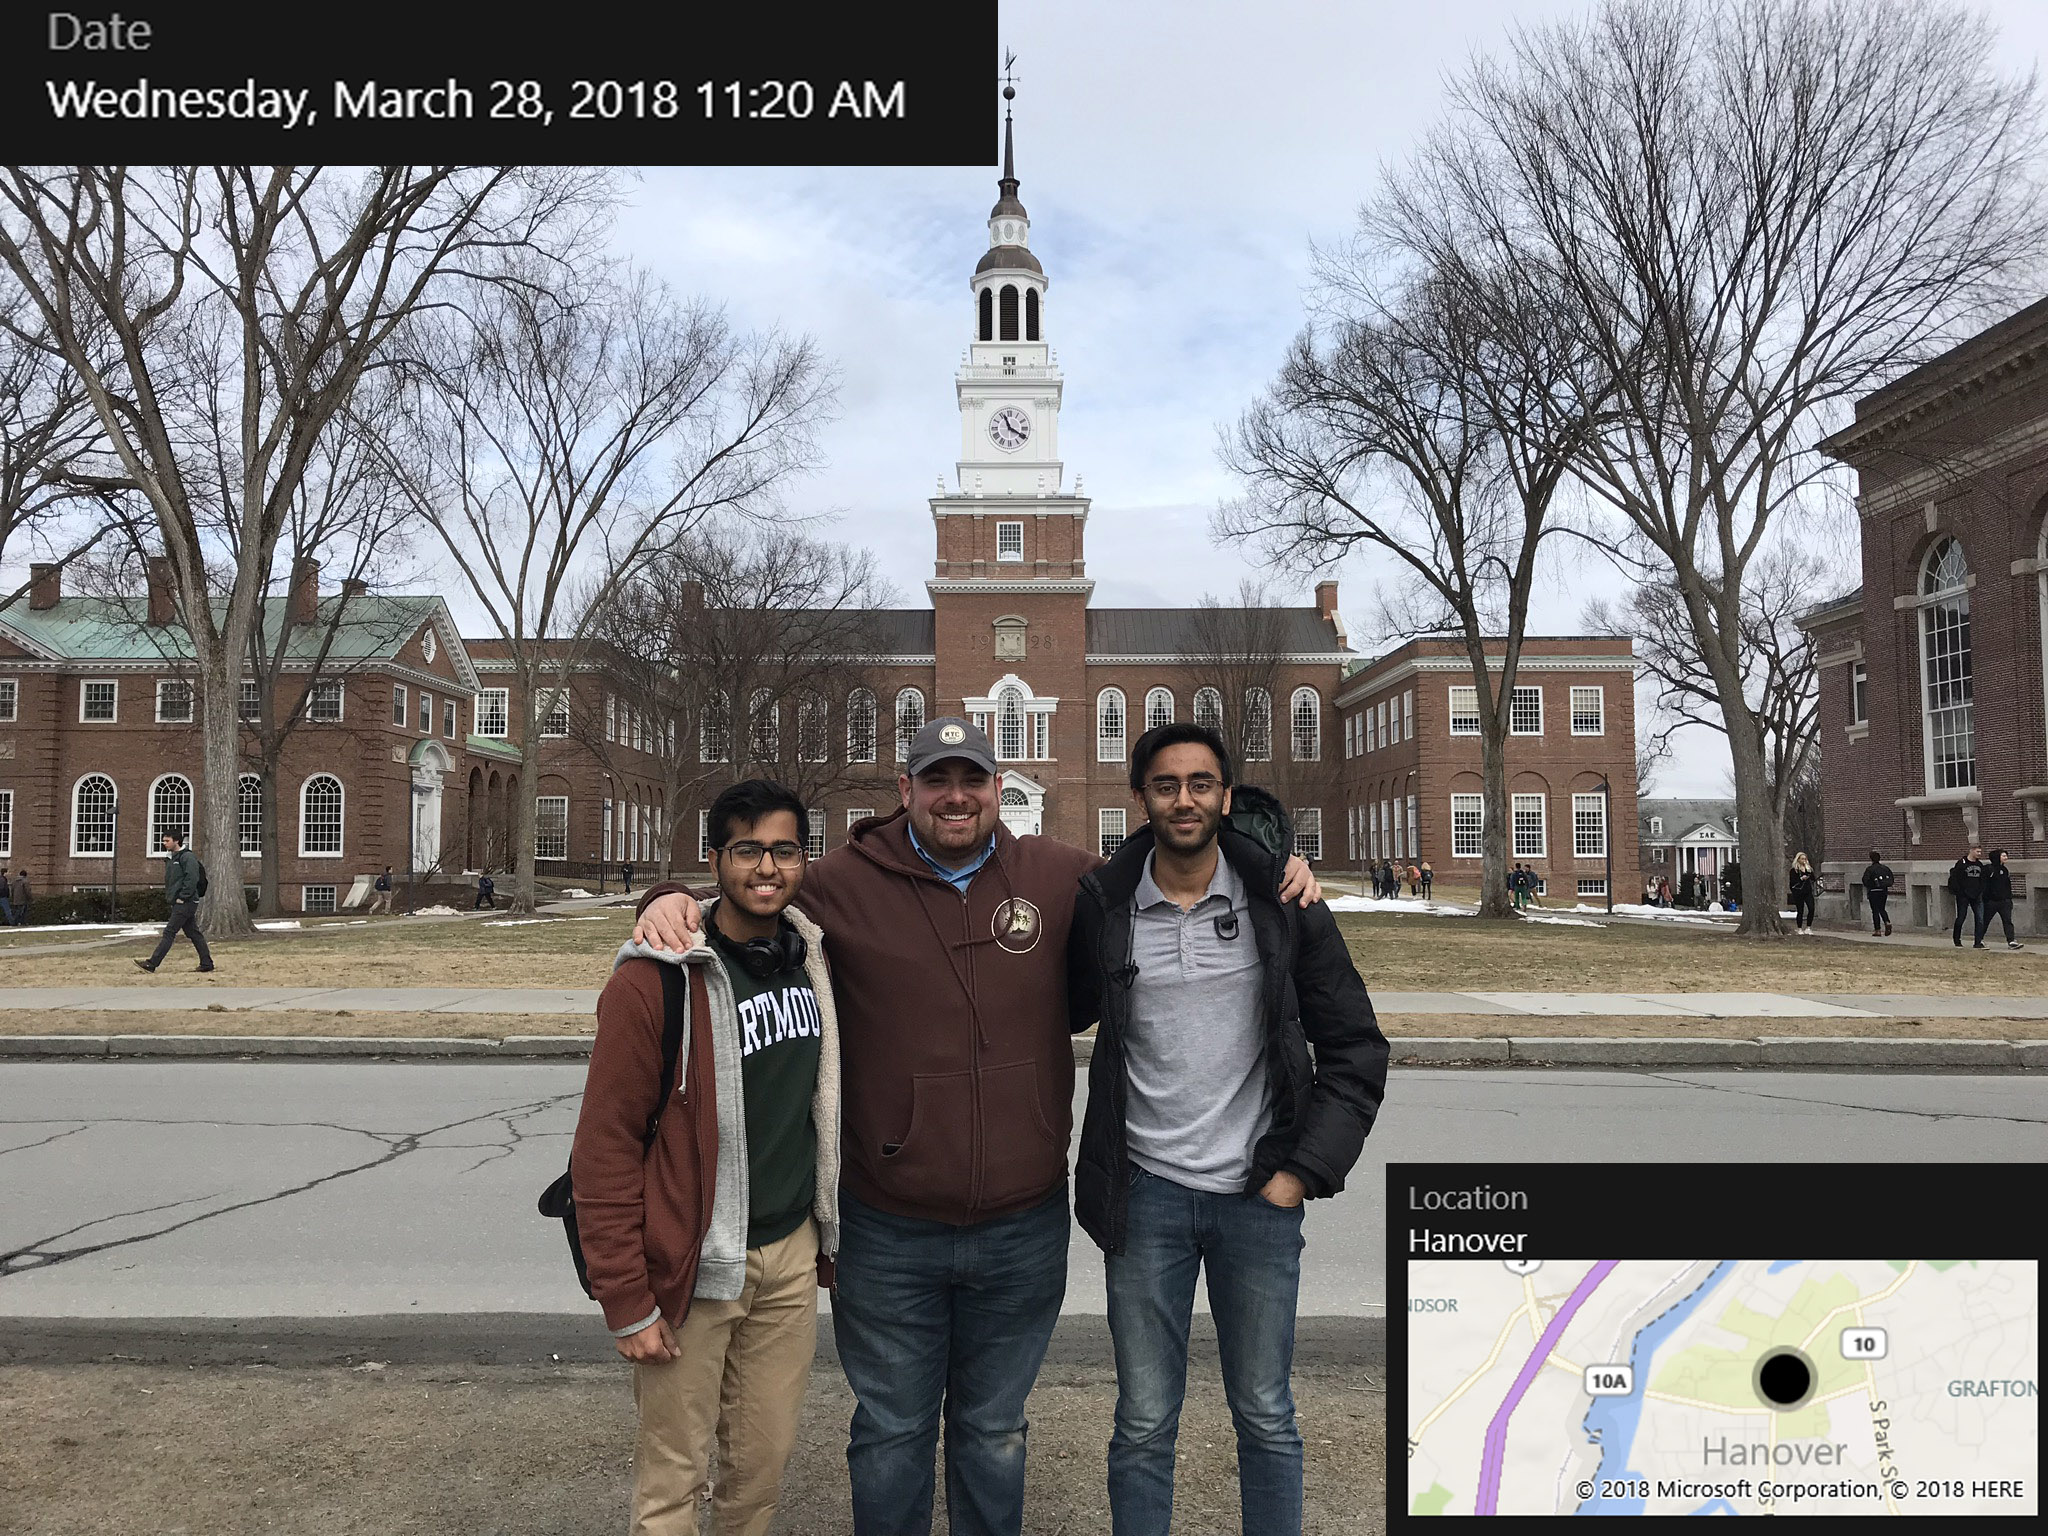 Ben Stern meets with students Sunbir Chawla and Namit Kapoor on the Dartmouth Green outside Baker Library